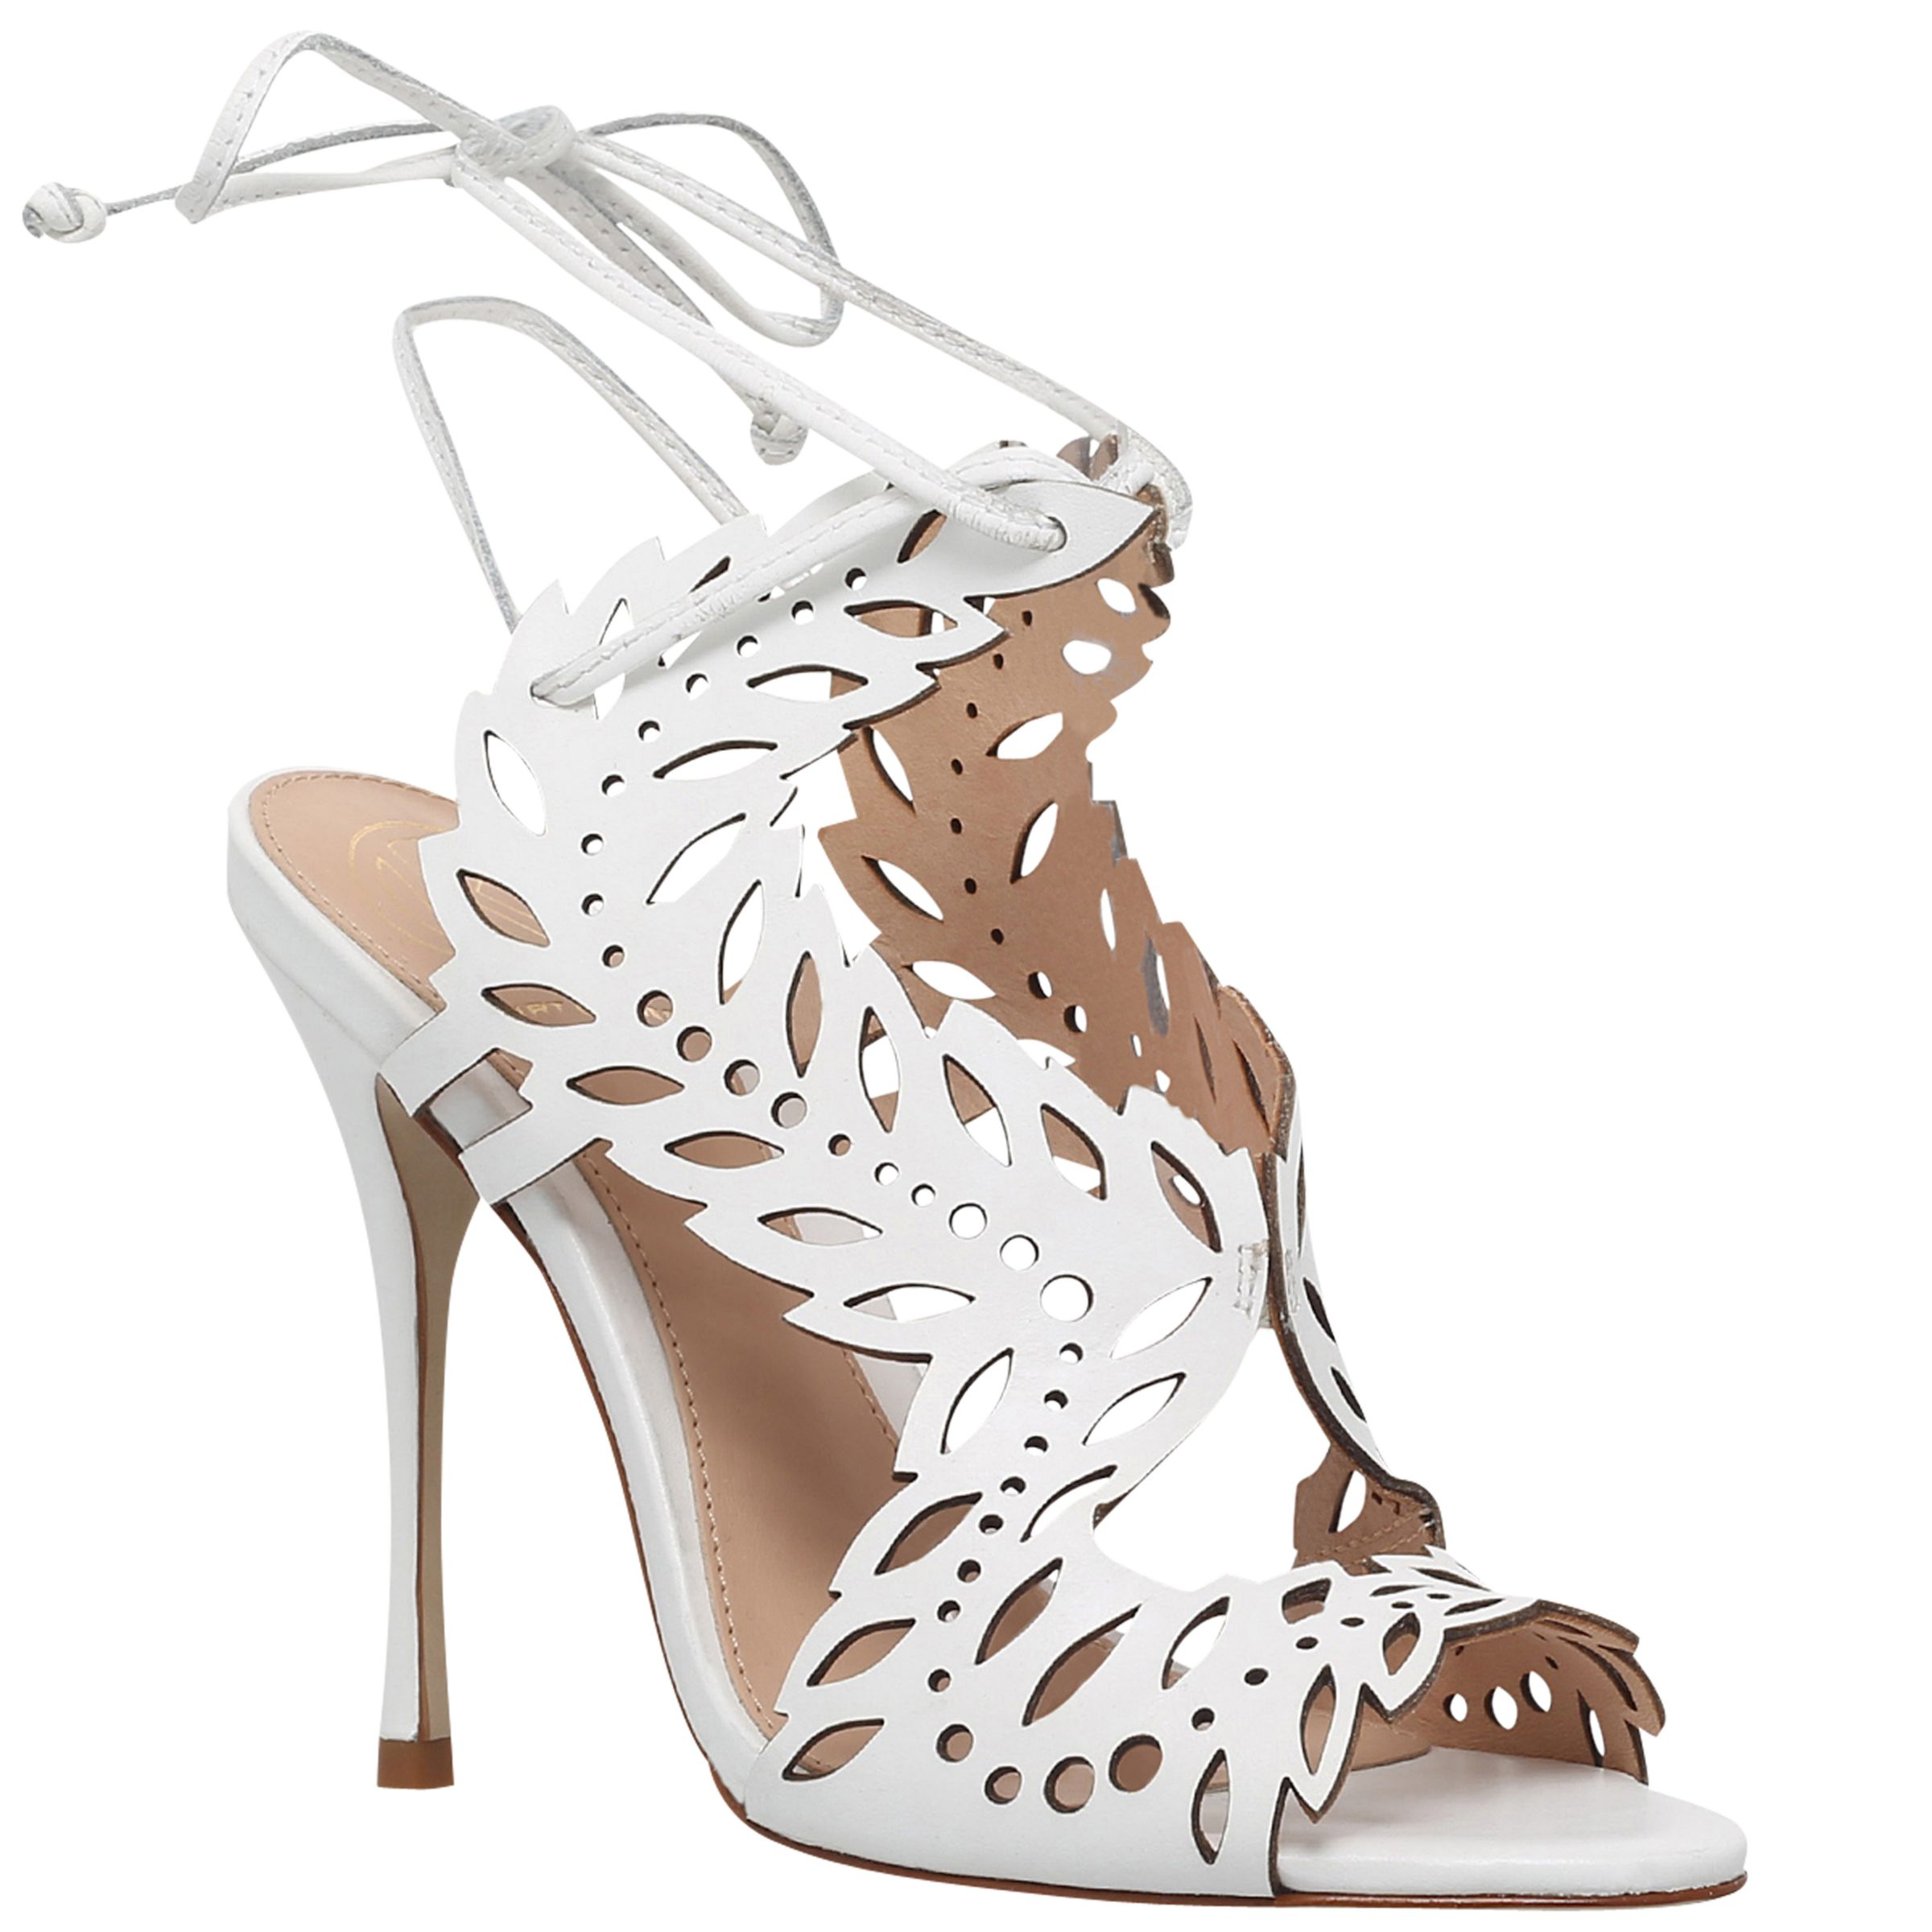 KG by Kurt Geiger KG by Kurt Geiger Horatio Cut Out Stiletto Sandals